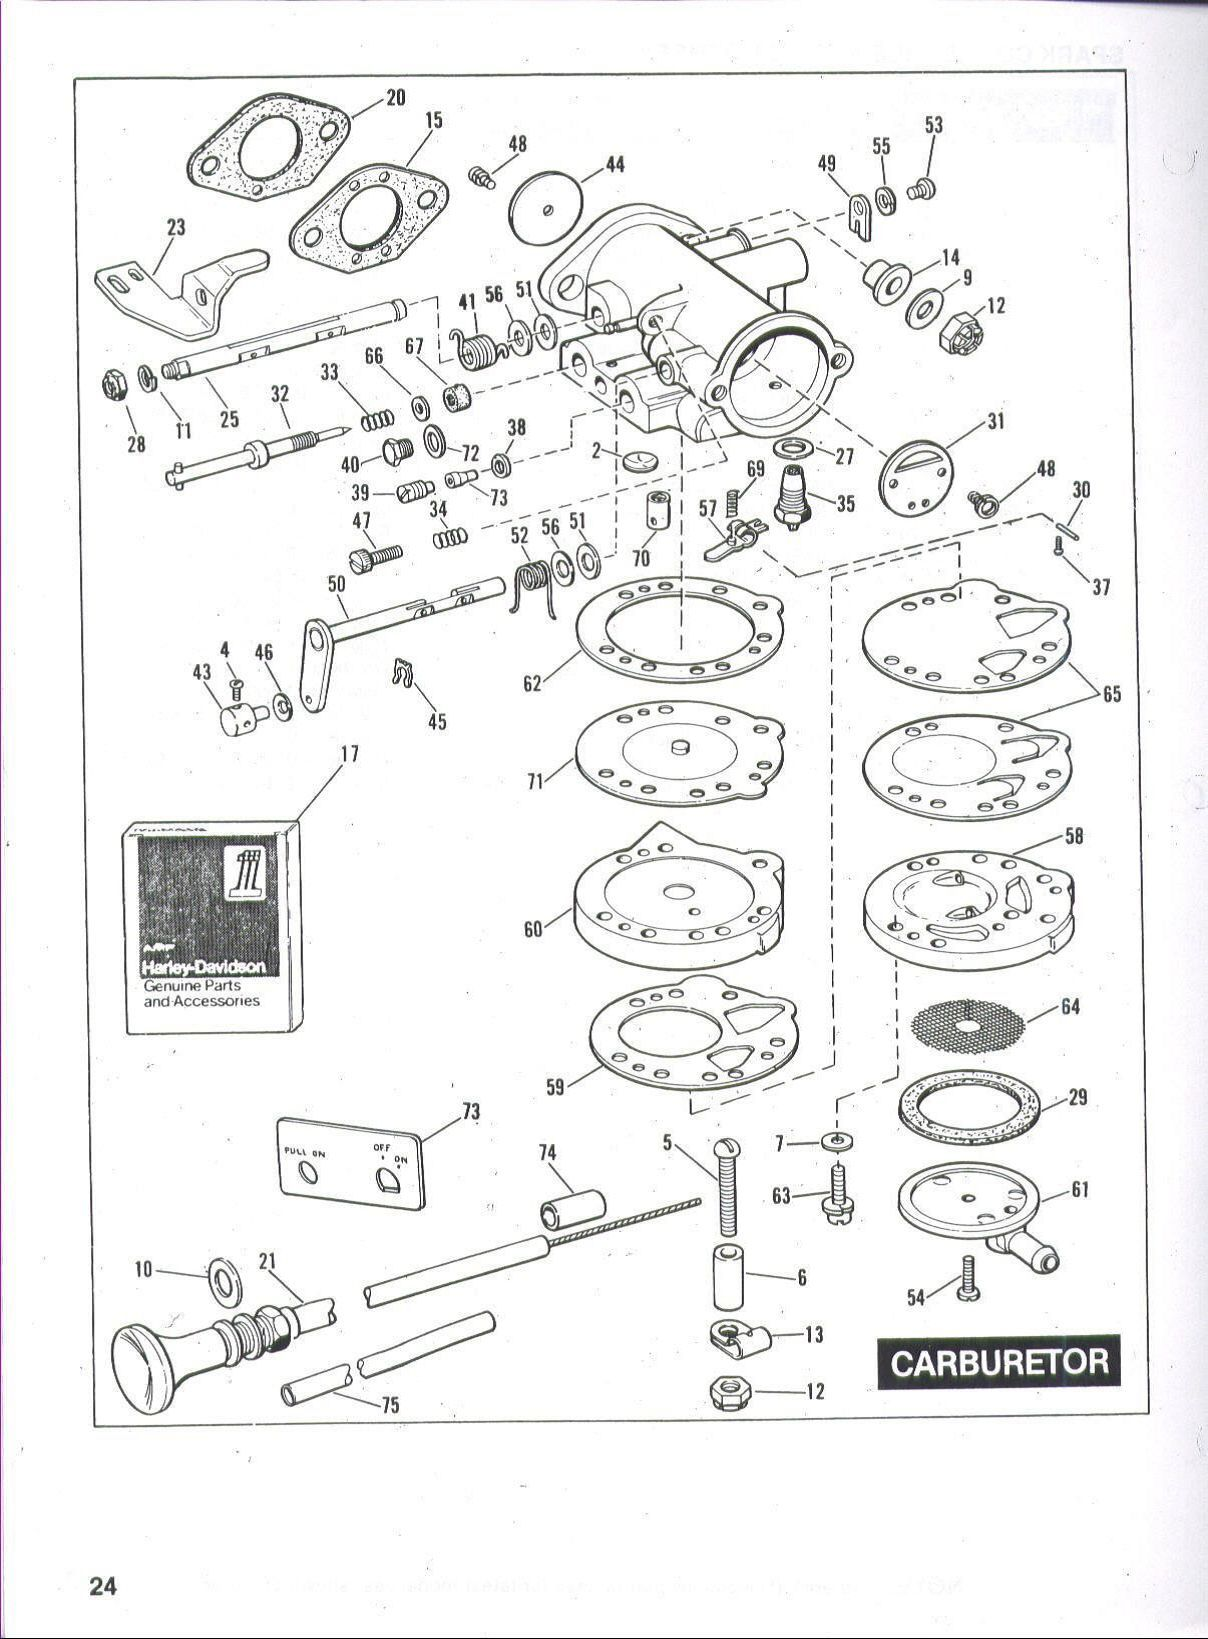 HarleyDavidson Golf Cart Carburetor Diagram | UTV stuff | Golf carts, Off road golf cart, Cart